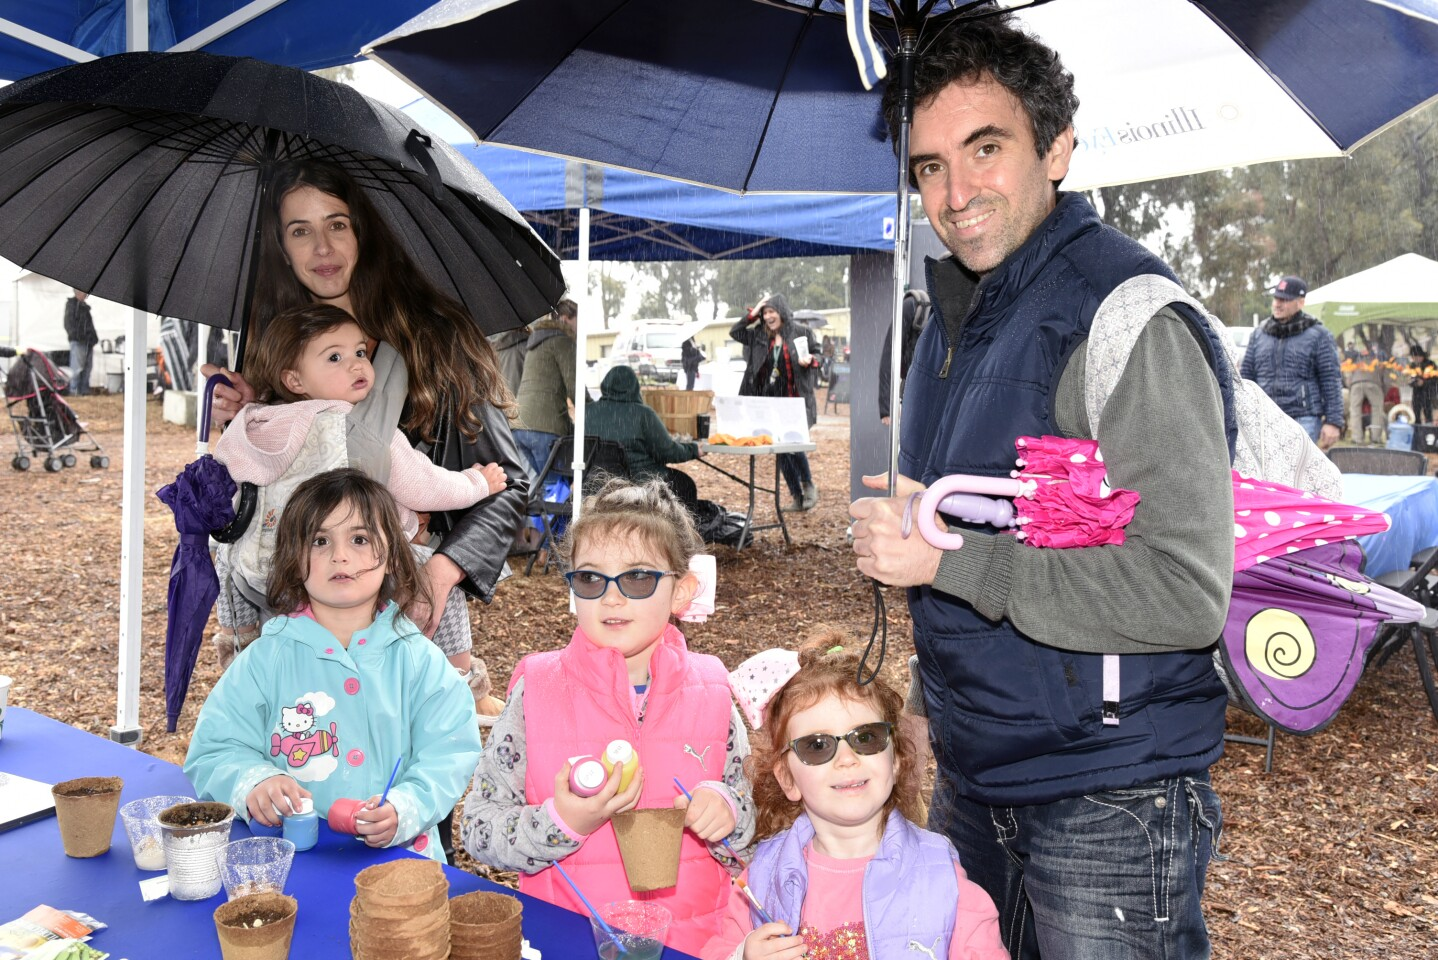 Hadar Gold with Aria and Mila, Shimon Ruben with Katie and Natalie